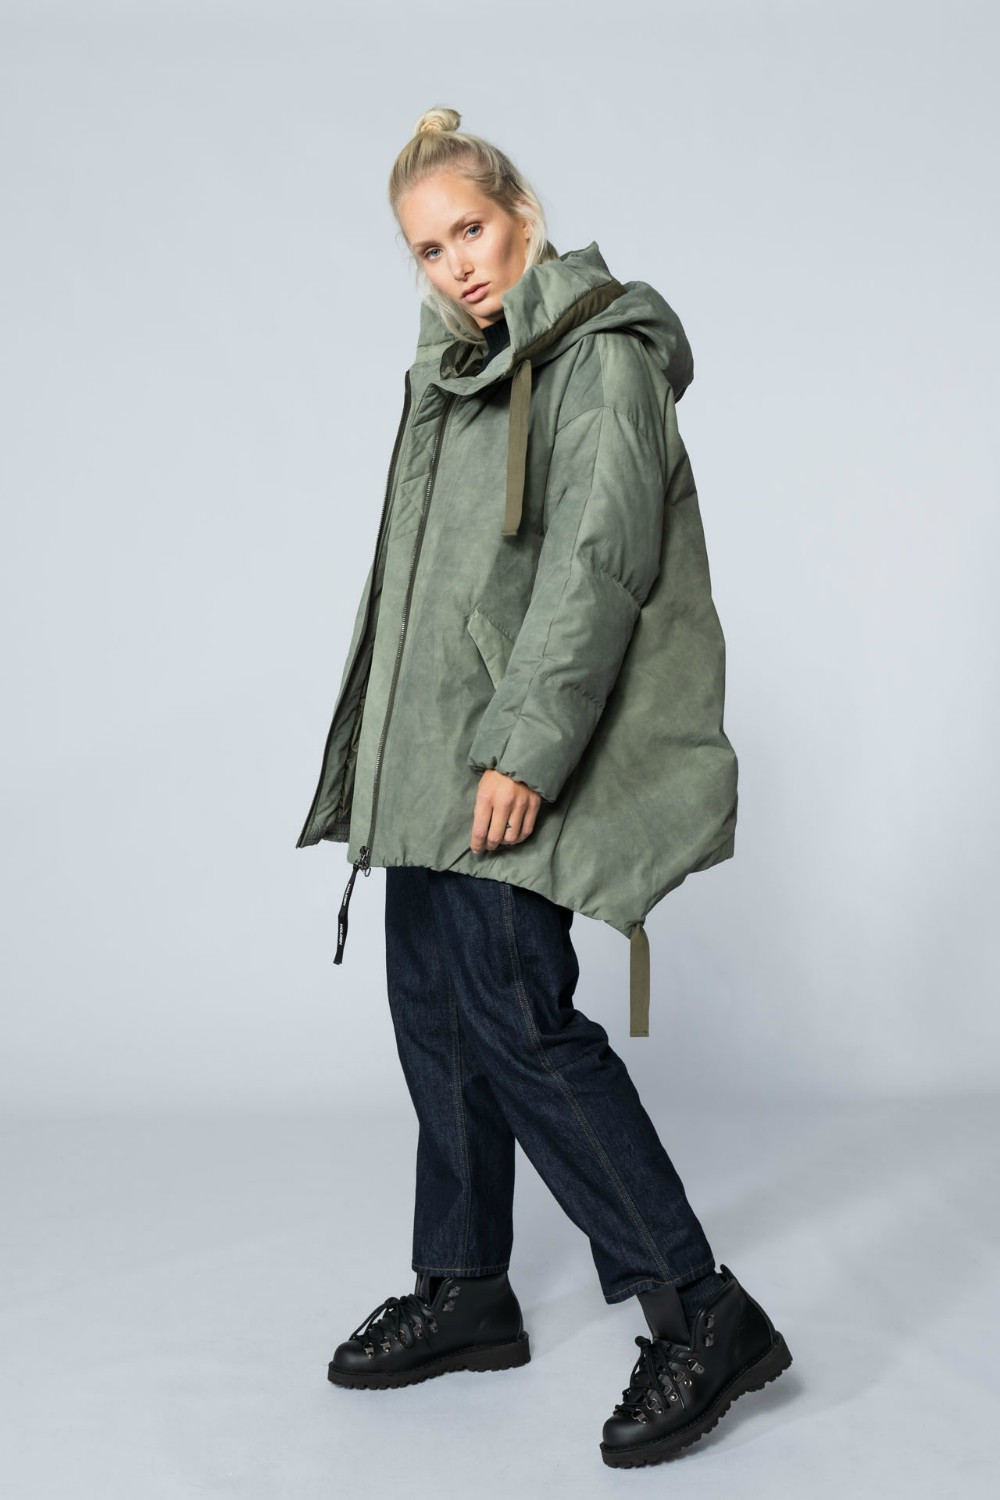 A long down parka style from Holden's AW20 line. Founders Scott Zergebel and Mikey LeBlanc imbued the outdoor apparel brand with a focus on fashion, performance and sustainability.